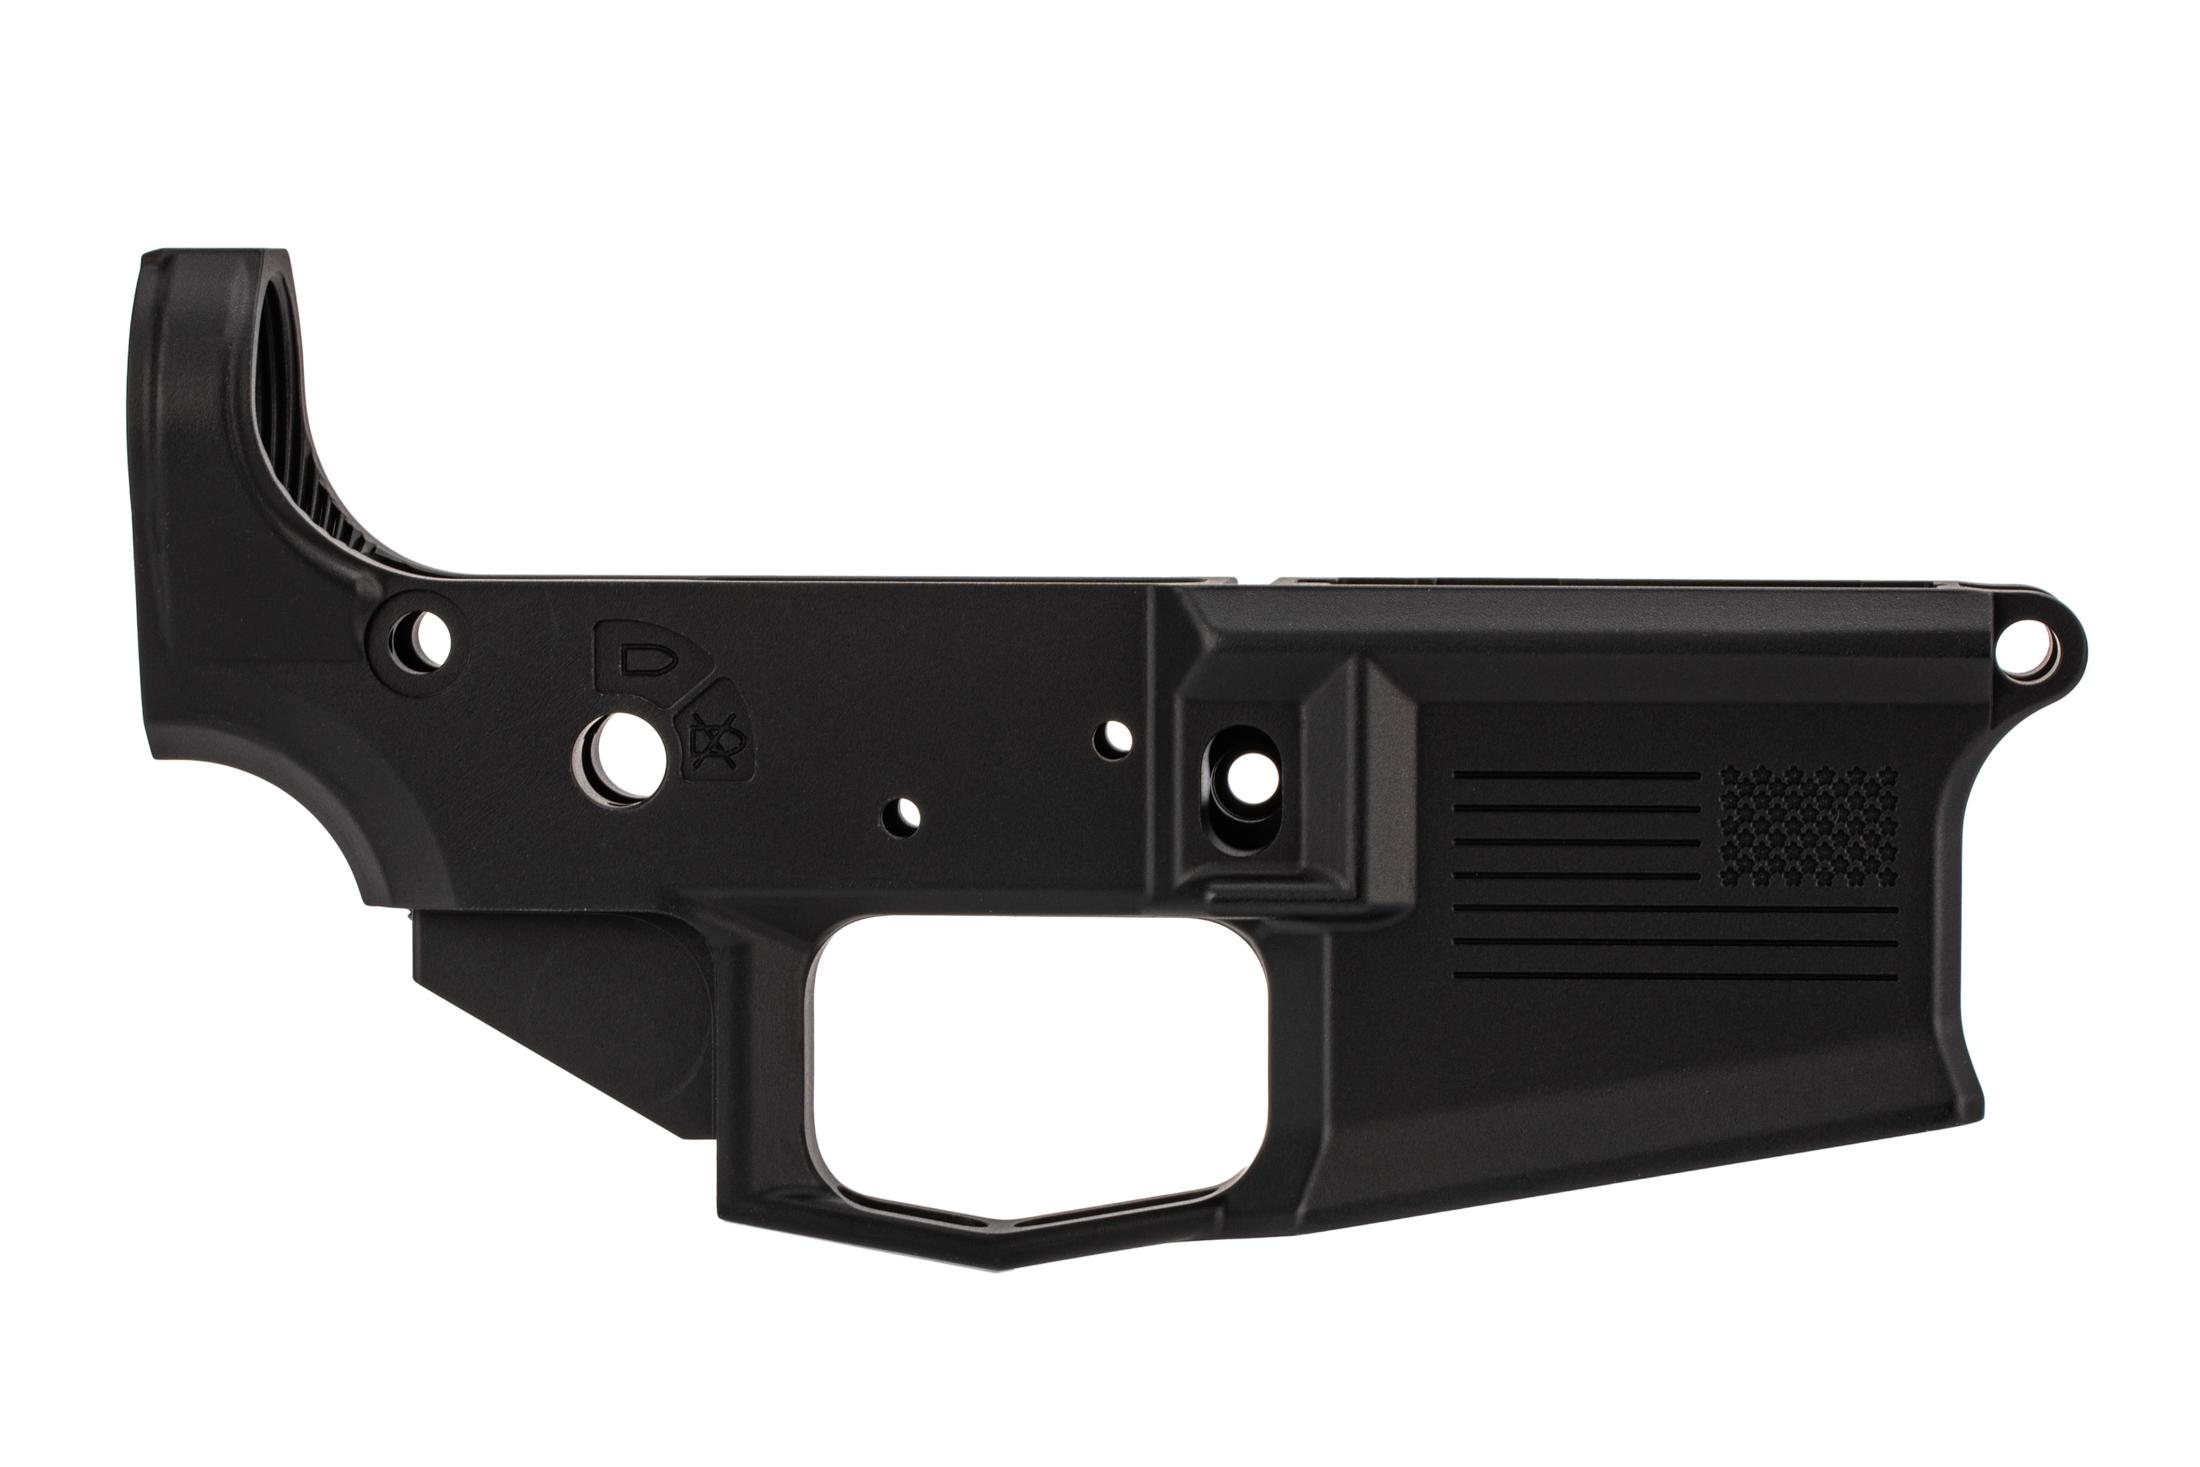 Aero Precision special edition M4E1 stripped AR15 lower with freedom engraving, black finish, and MULTI caliber marking